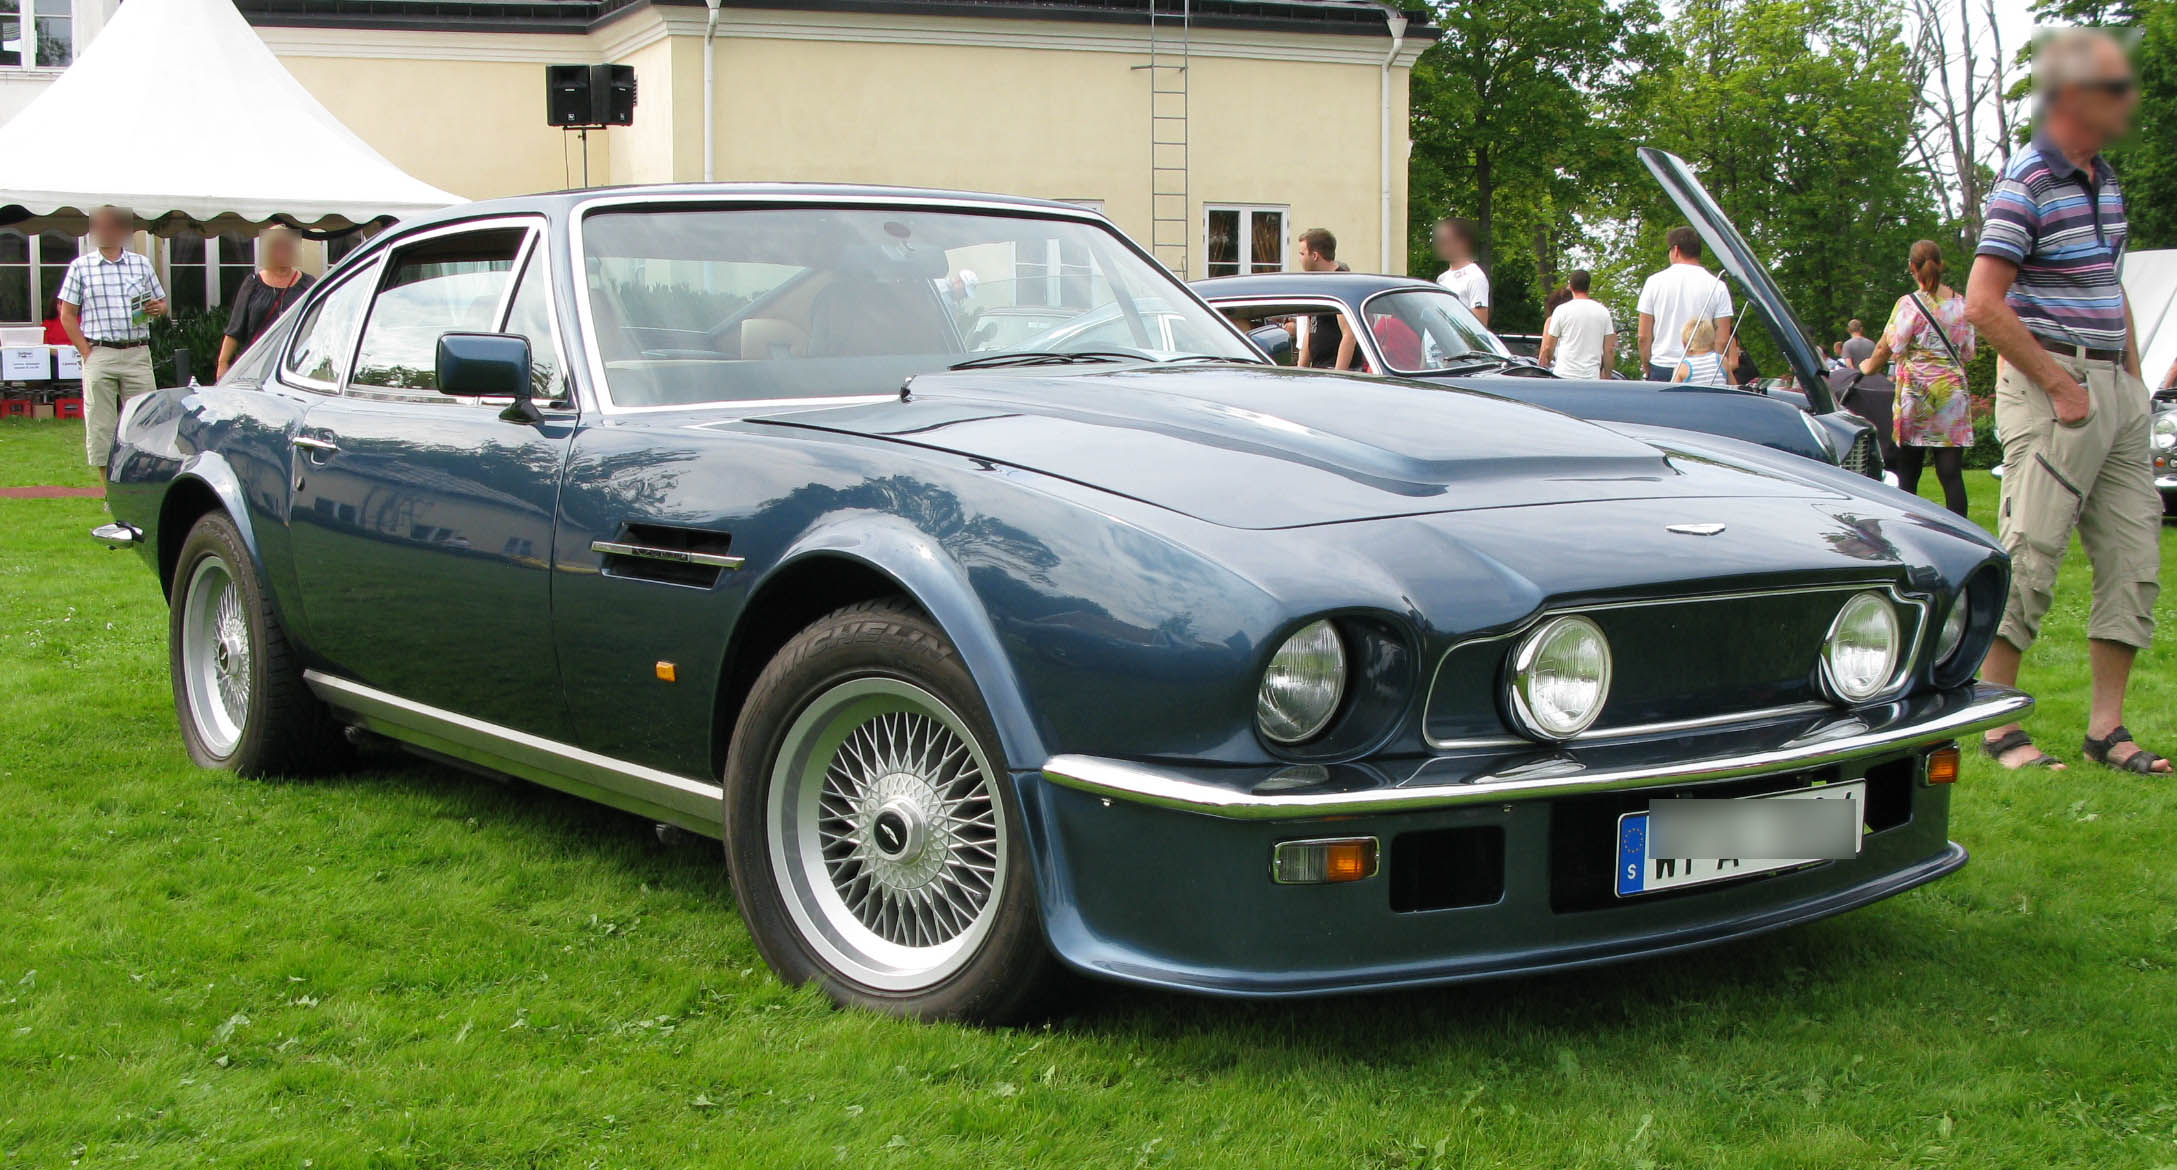 file 1988 aston martin v8 vantage wikimedia commons. Black Bedroom Furniture Sets. Home Design Ideas